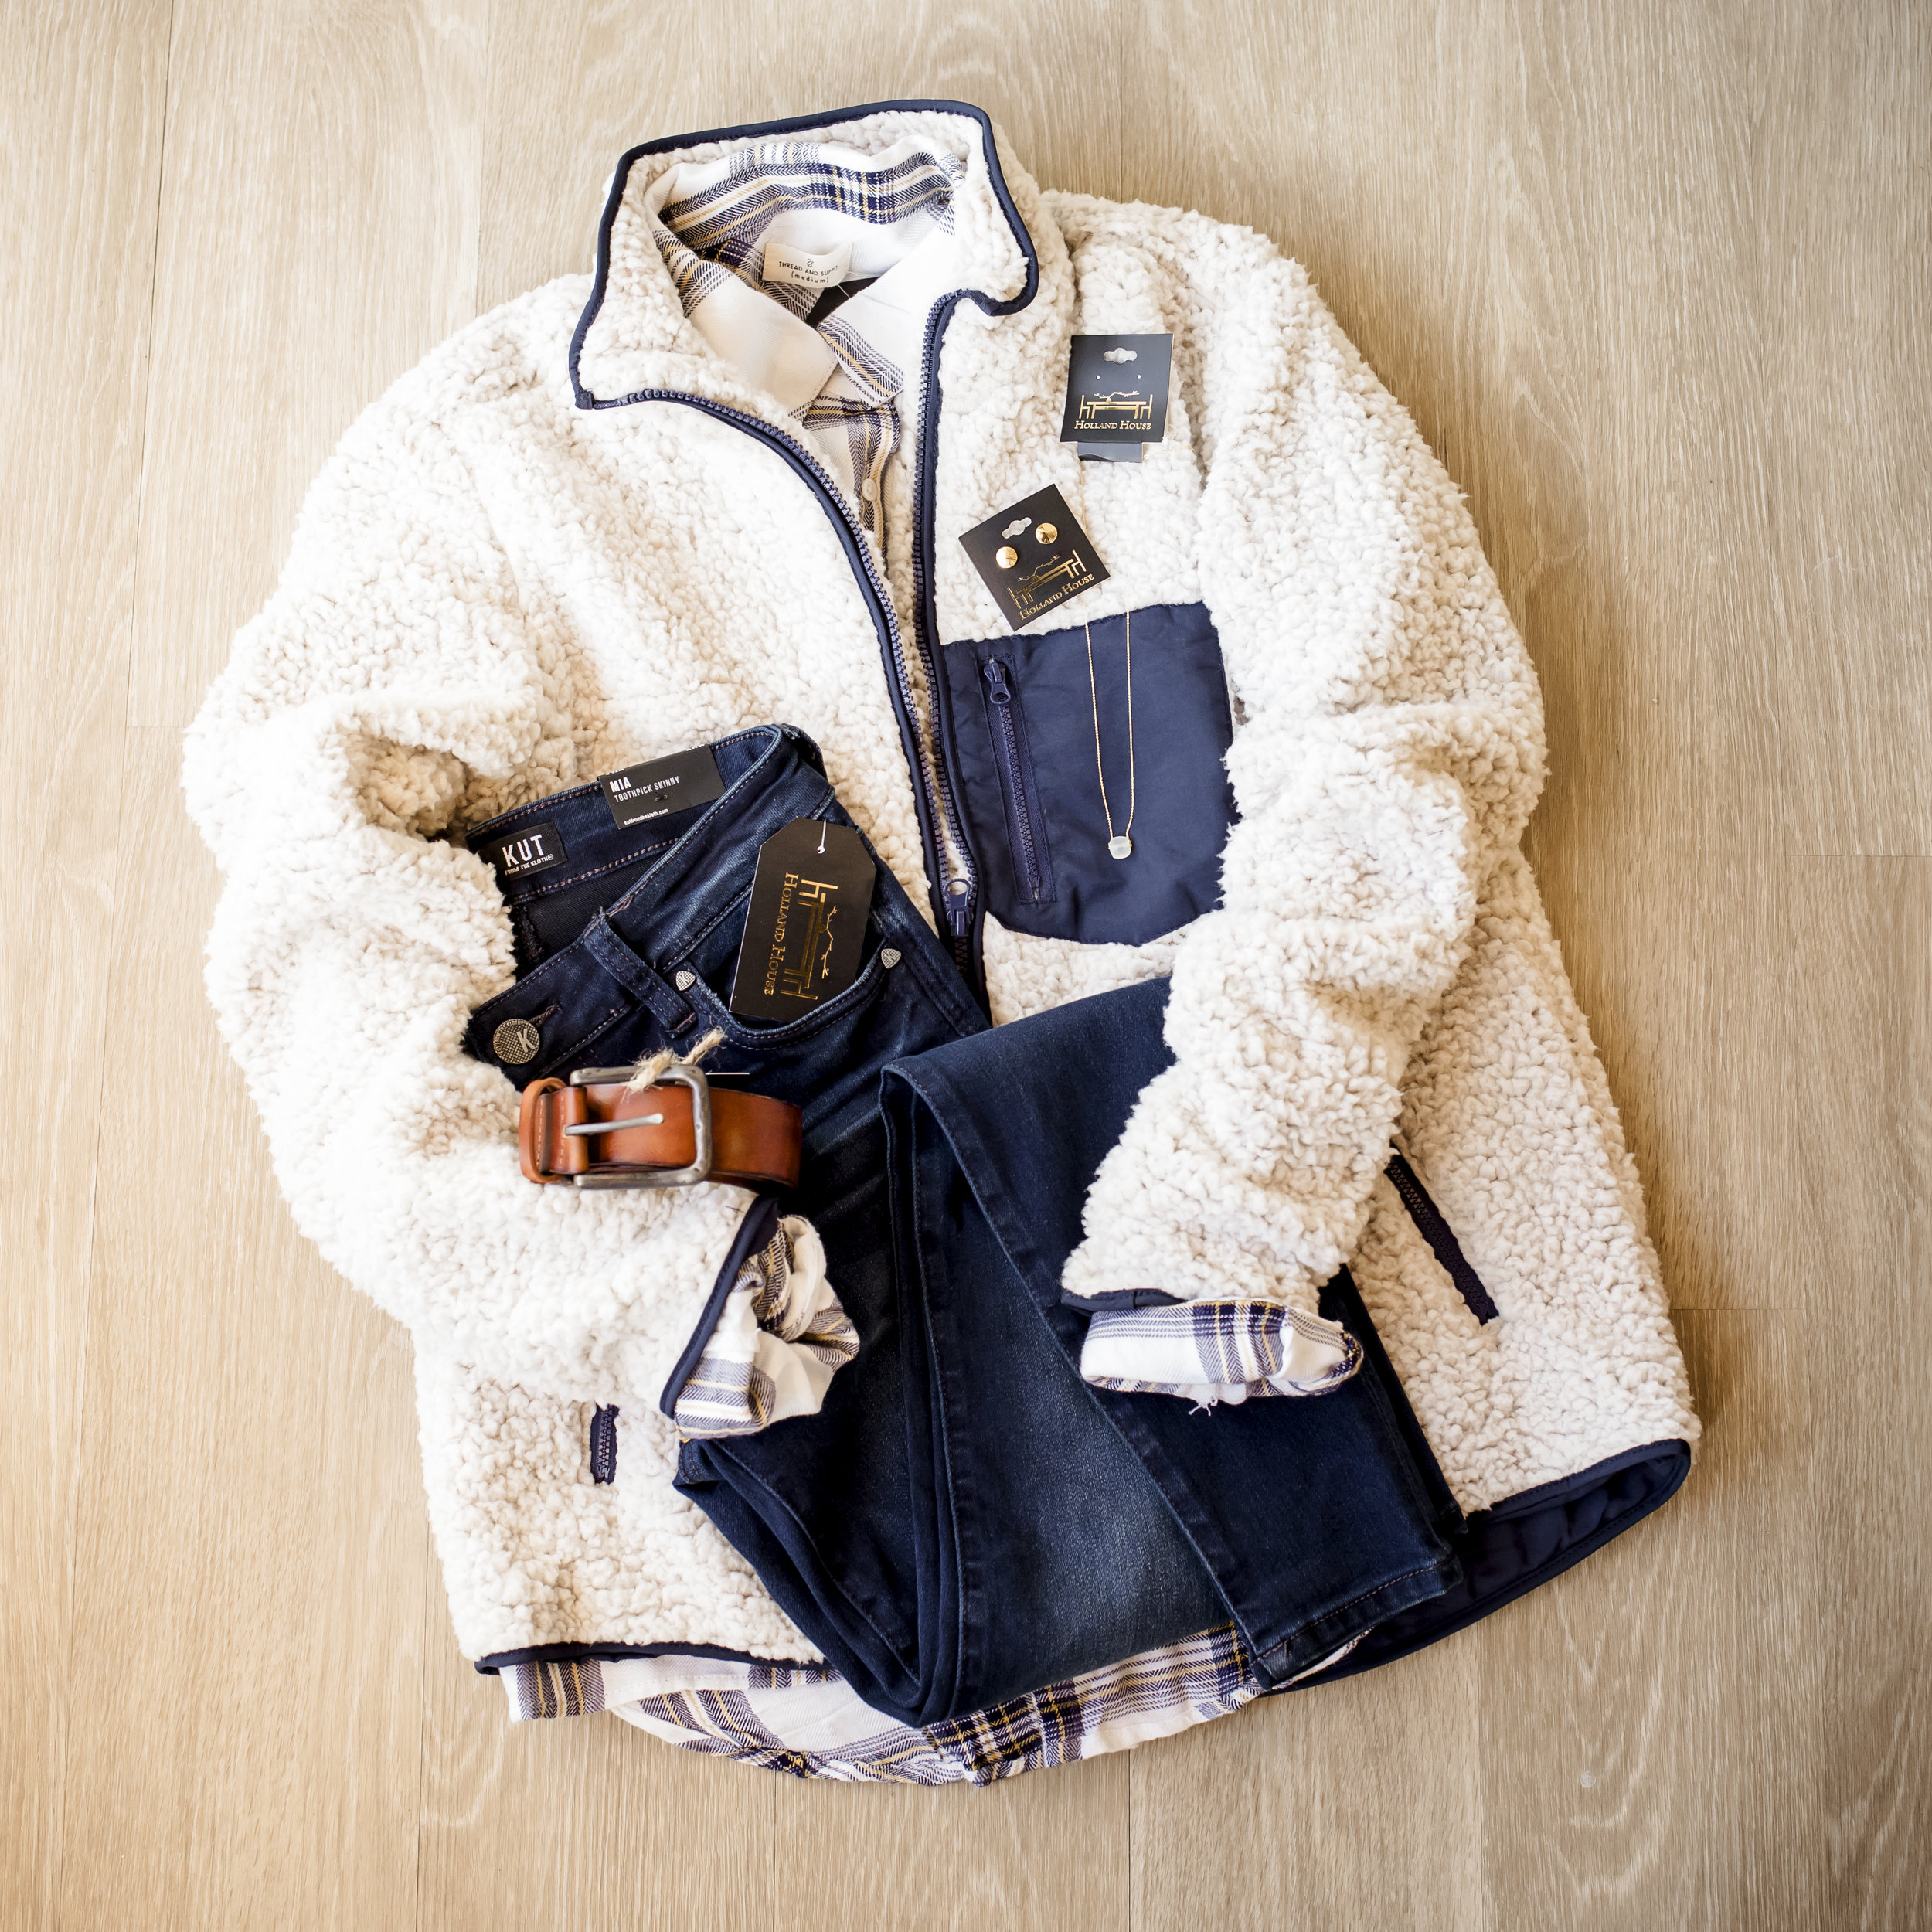 Thread and Supply plaid button-down top $43, Thread and Supply Sherpa zip $73, KUT from the Kloth denim $89, Brown belt $38, Gold thumbtack earrings $16, Frosted marble necklace $14.50